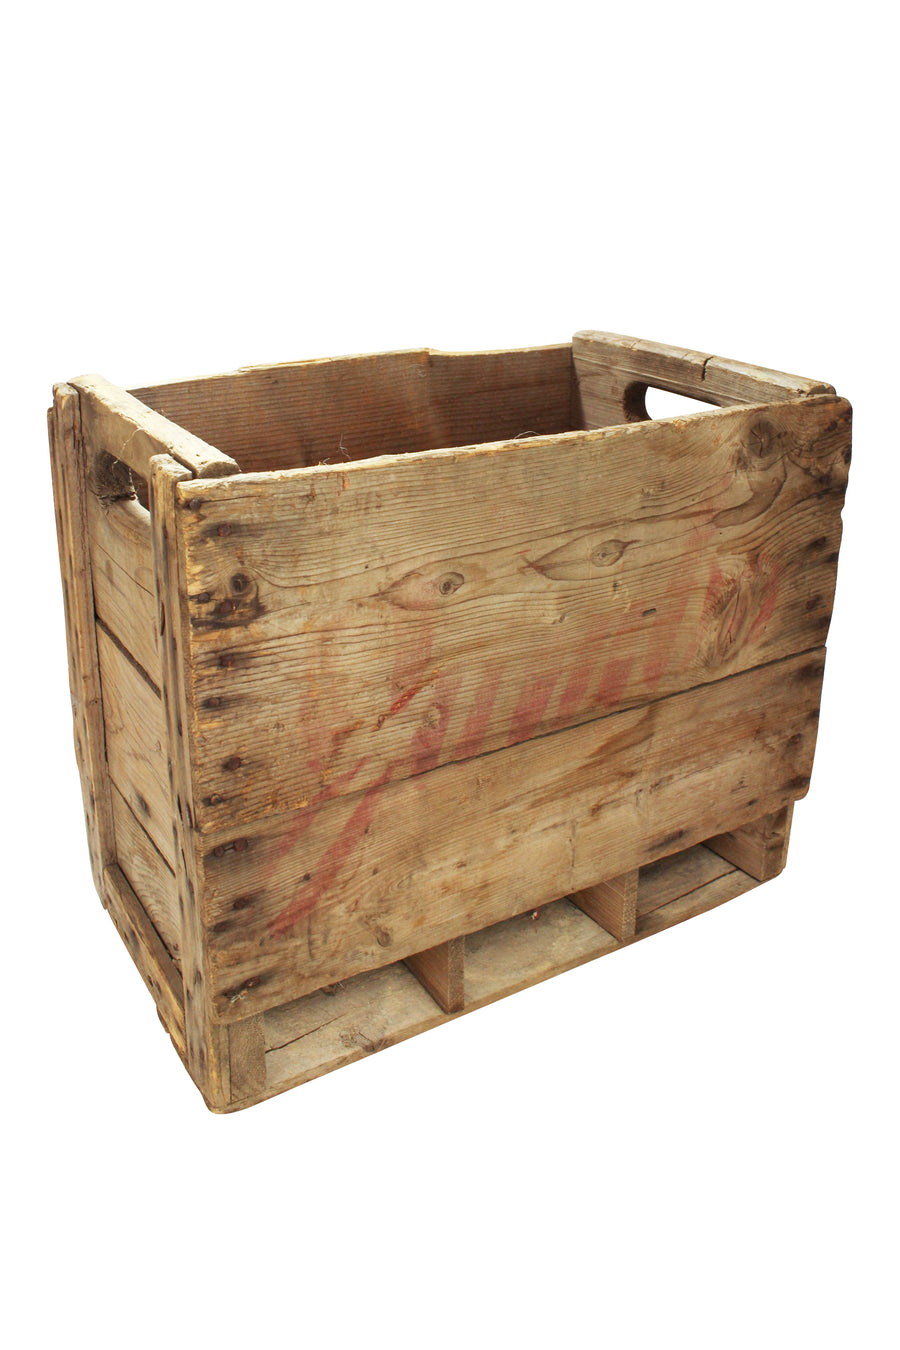 Slotted Crate